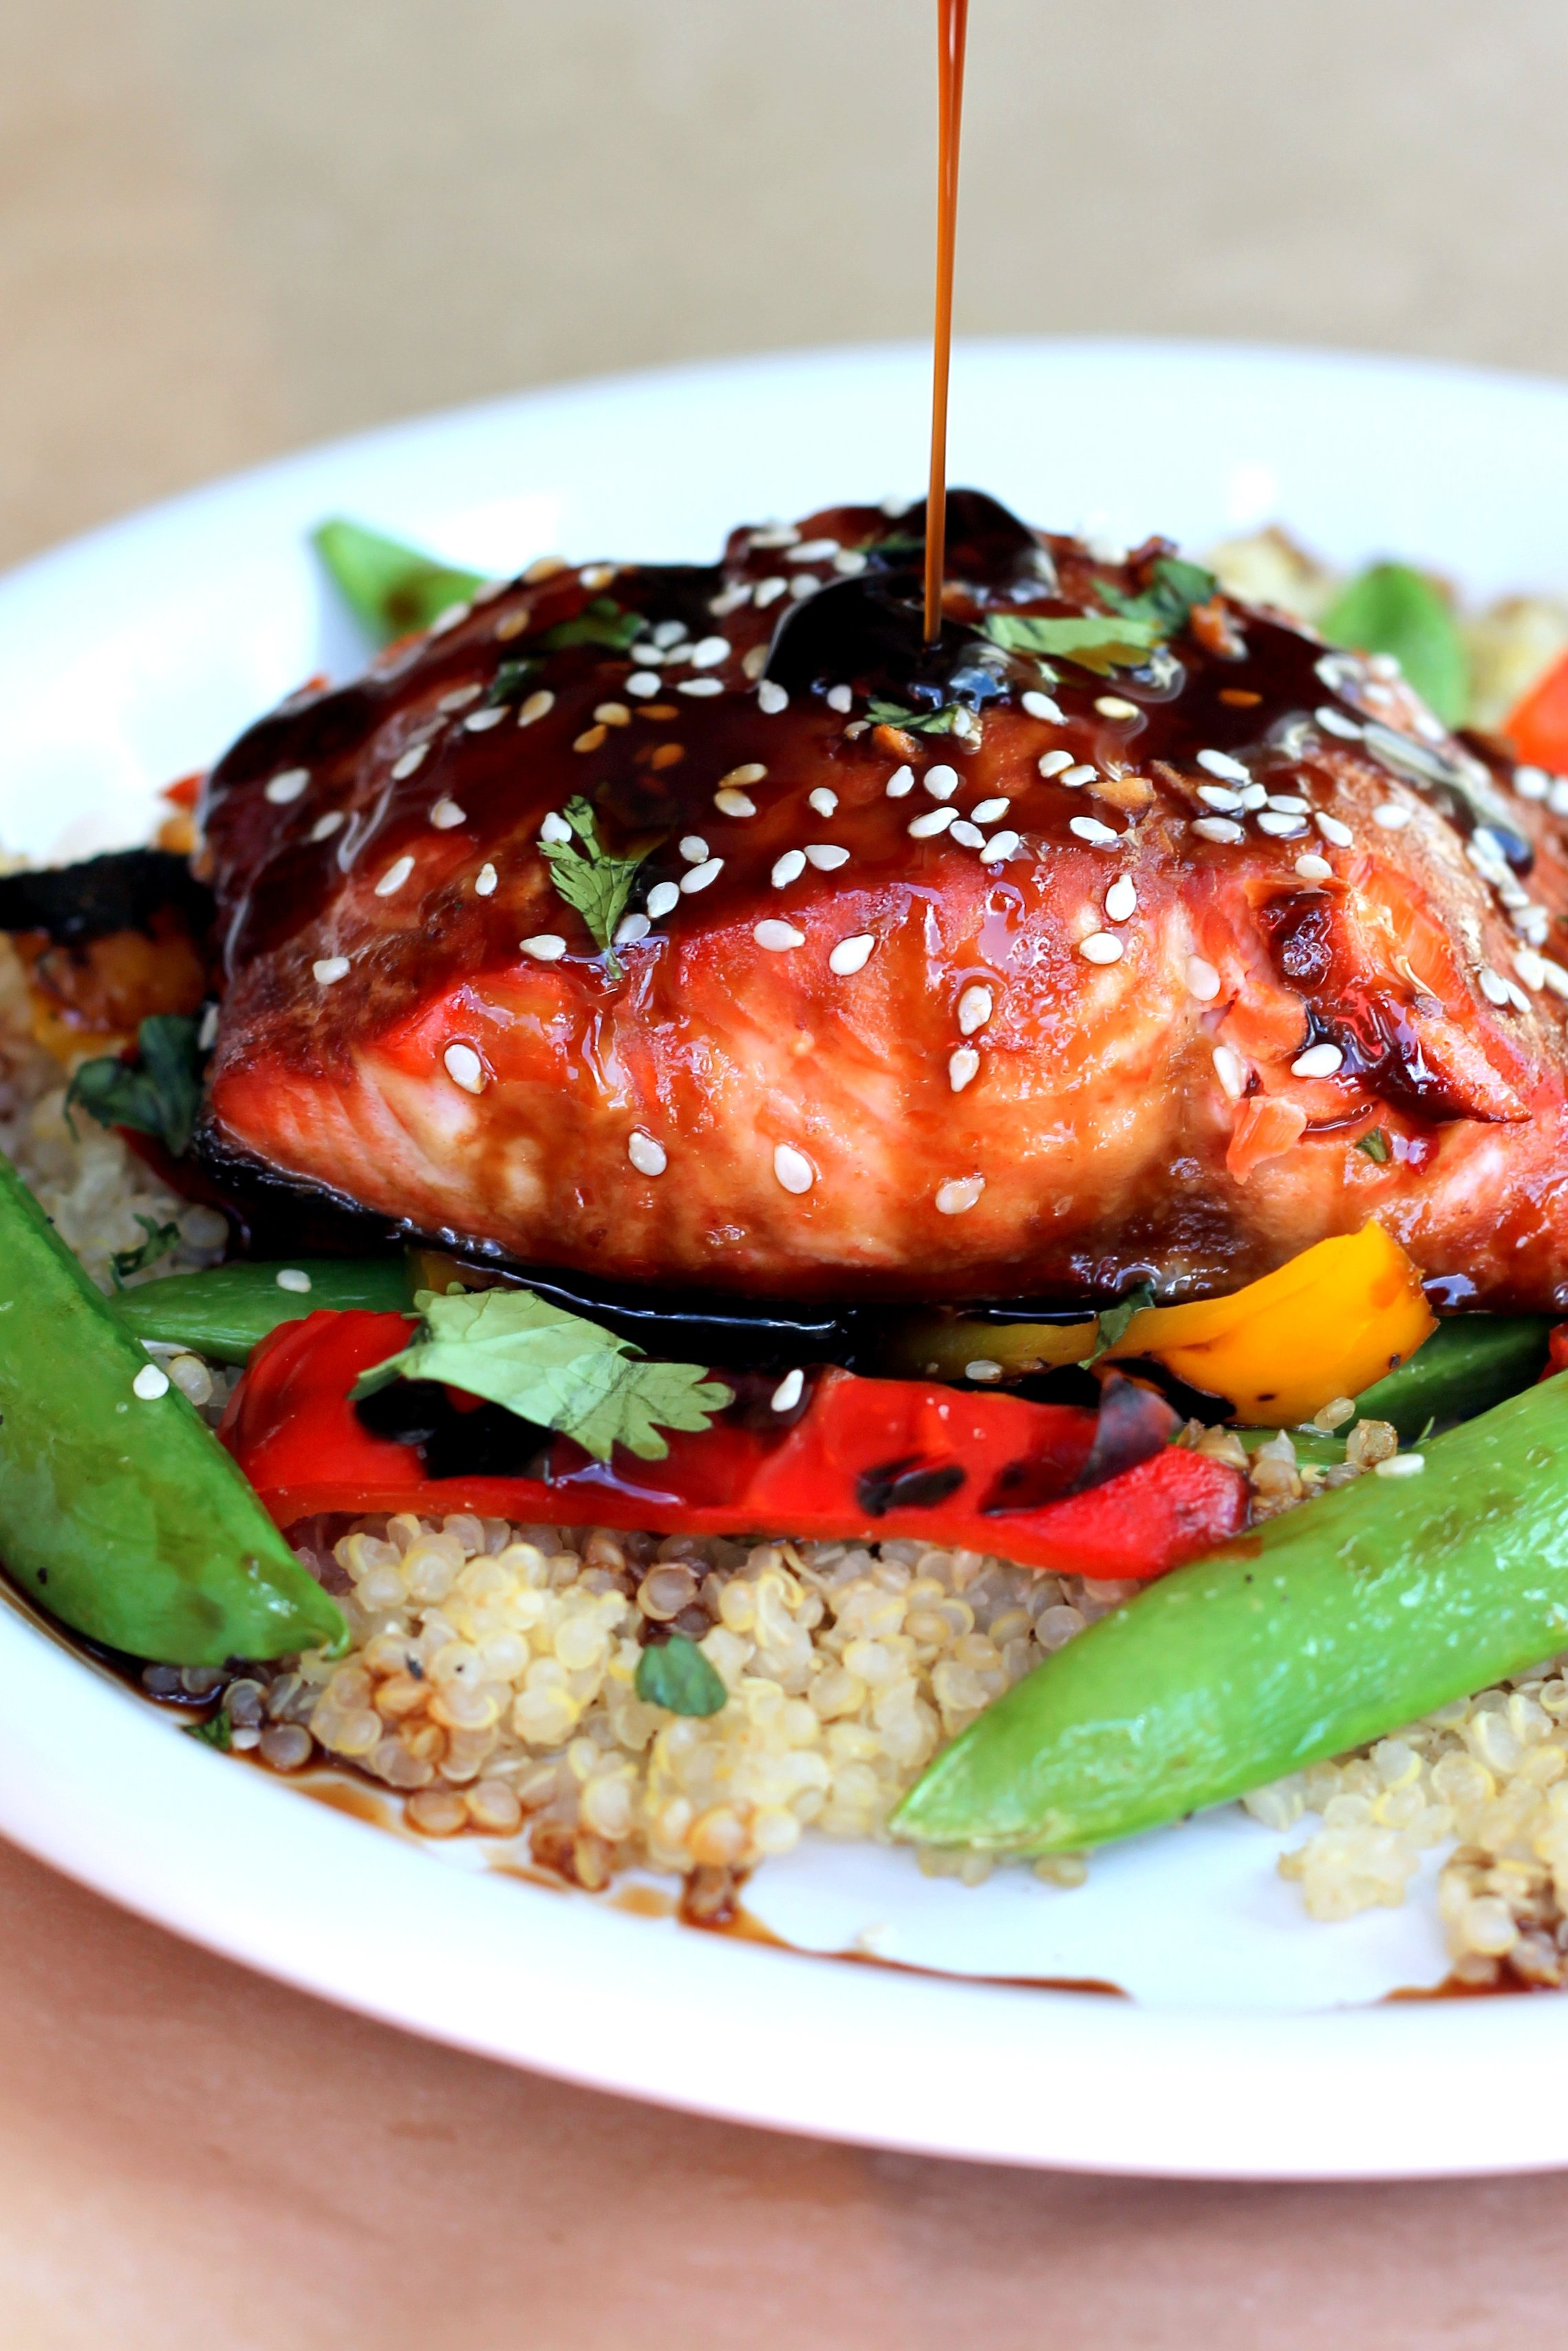 Delicious, healthy salmon recipes that are perfect weekday lunches and dinners! These protein-packed salmon recipes are quick, easy and packed with flavor.